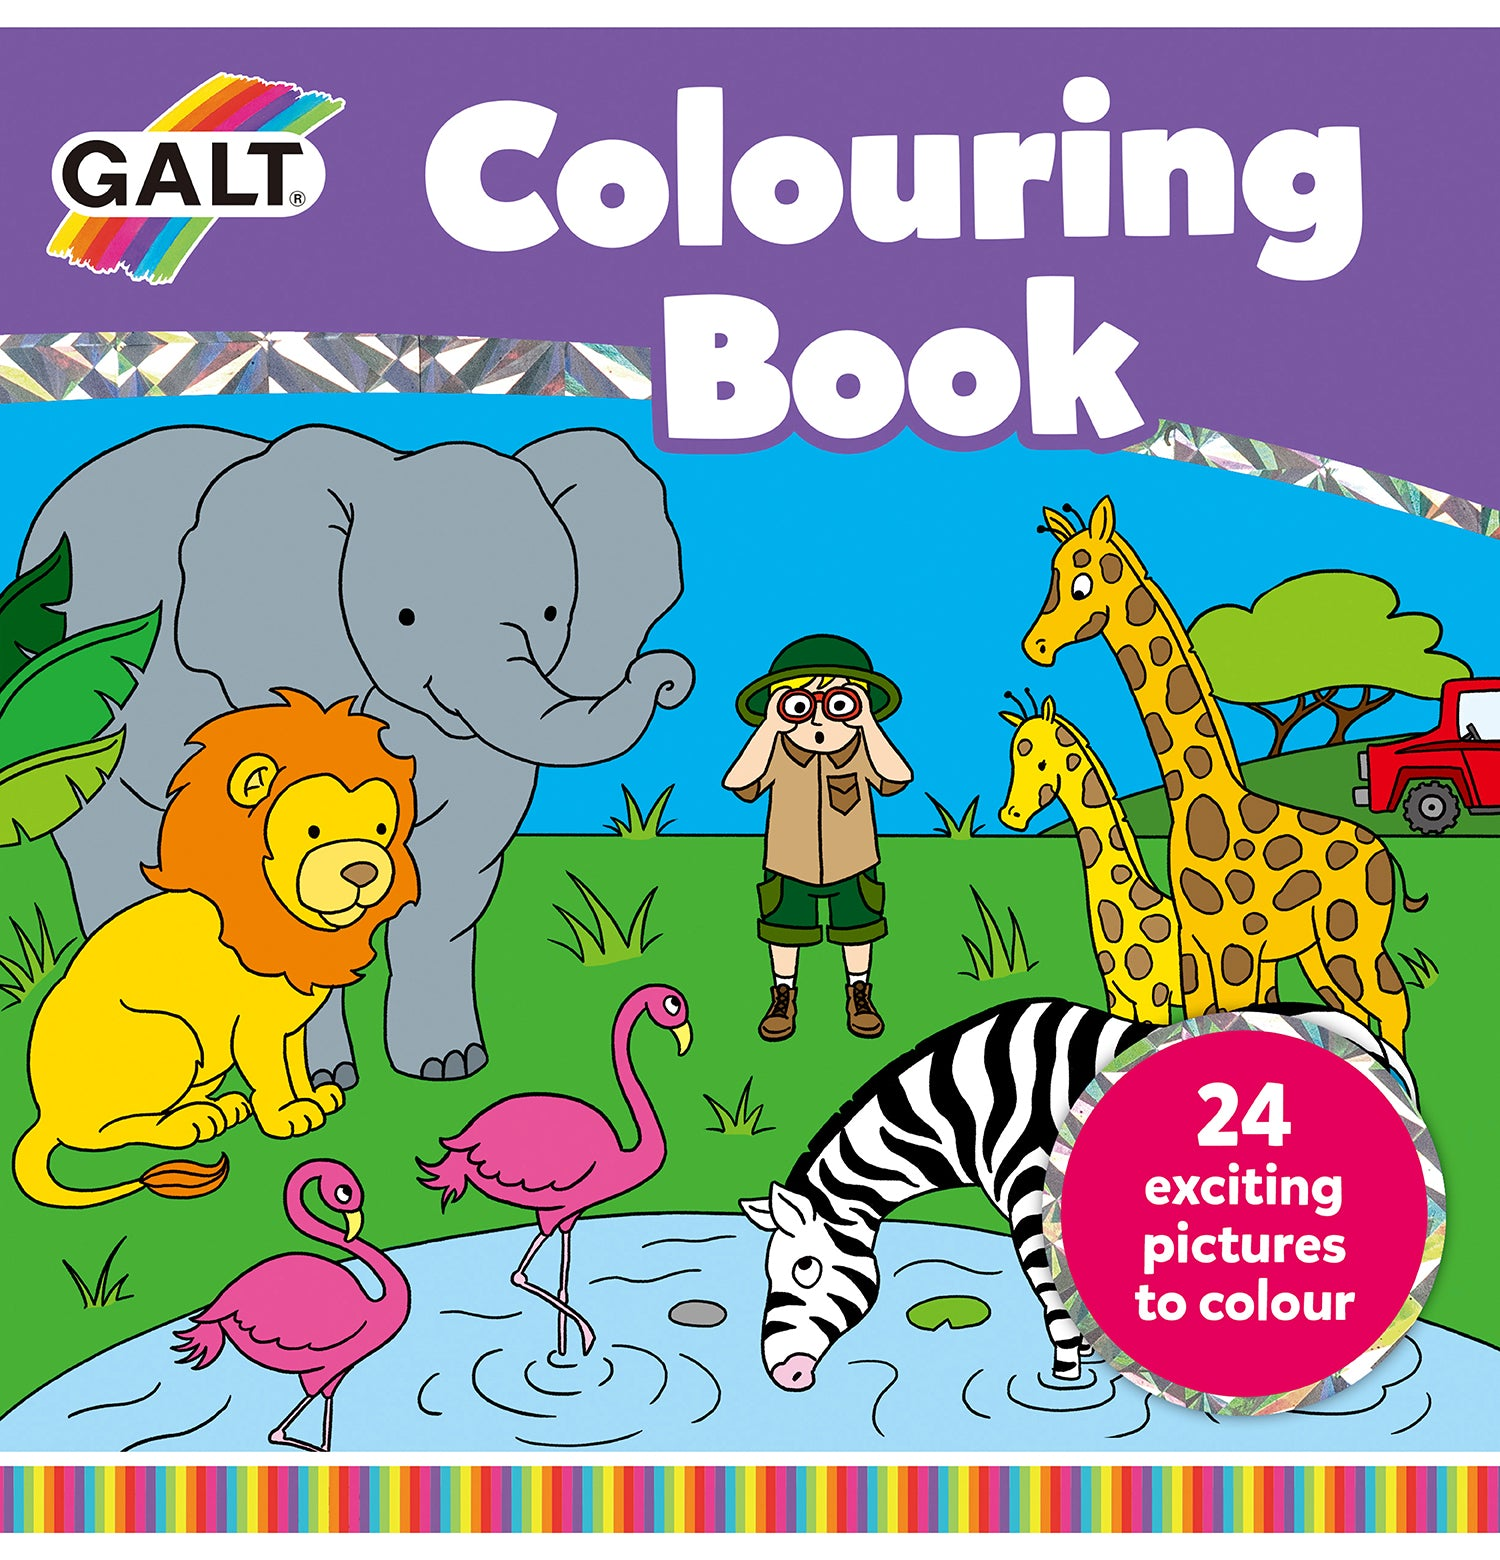 Colouring Book - Galt